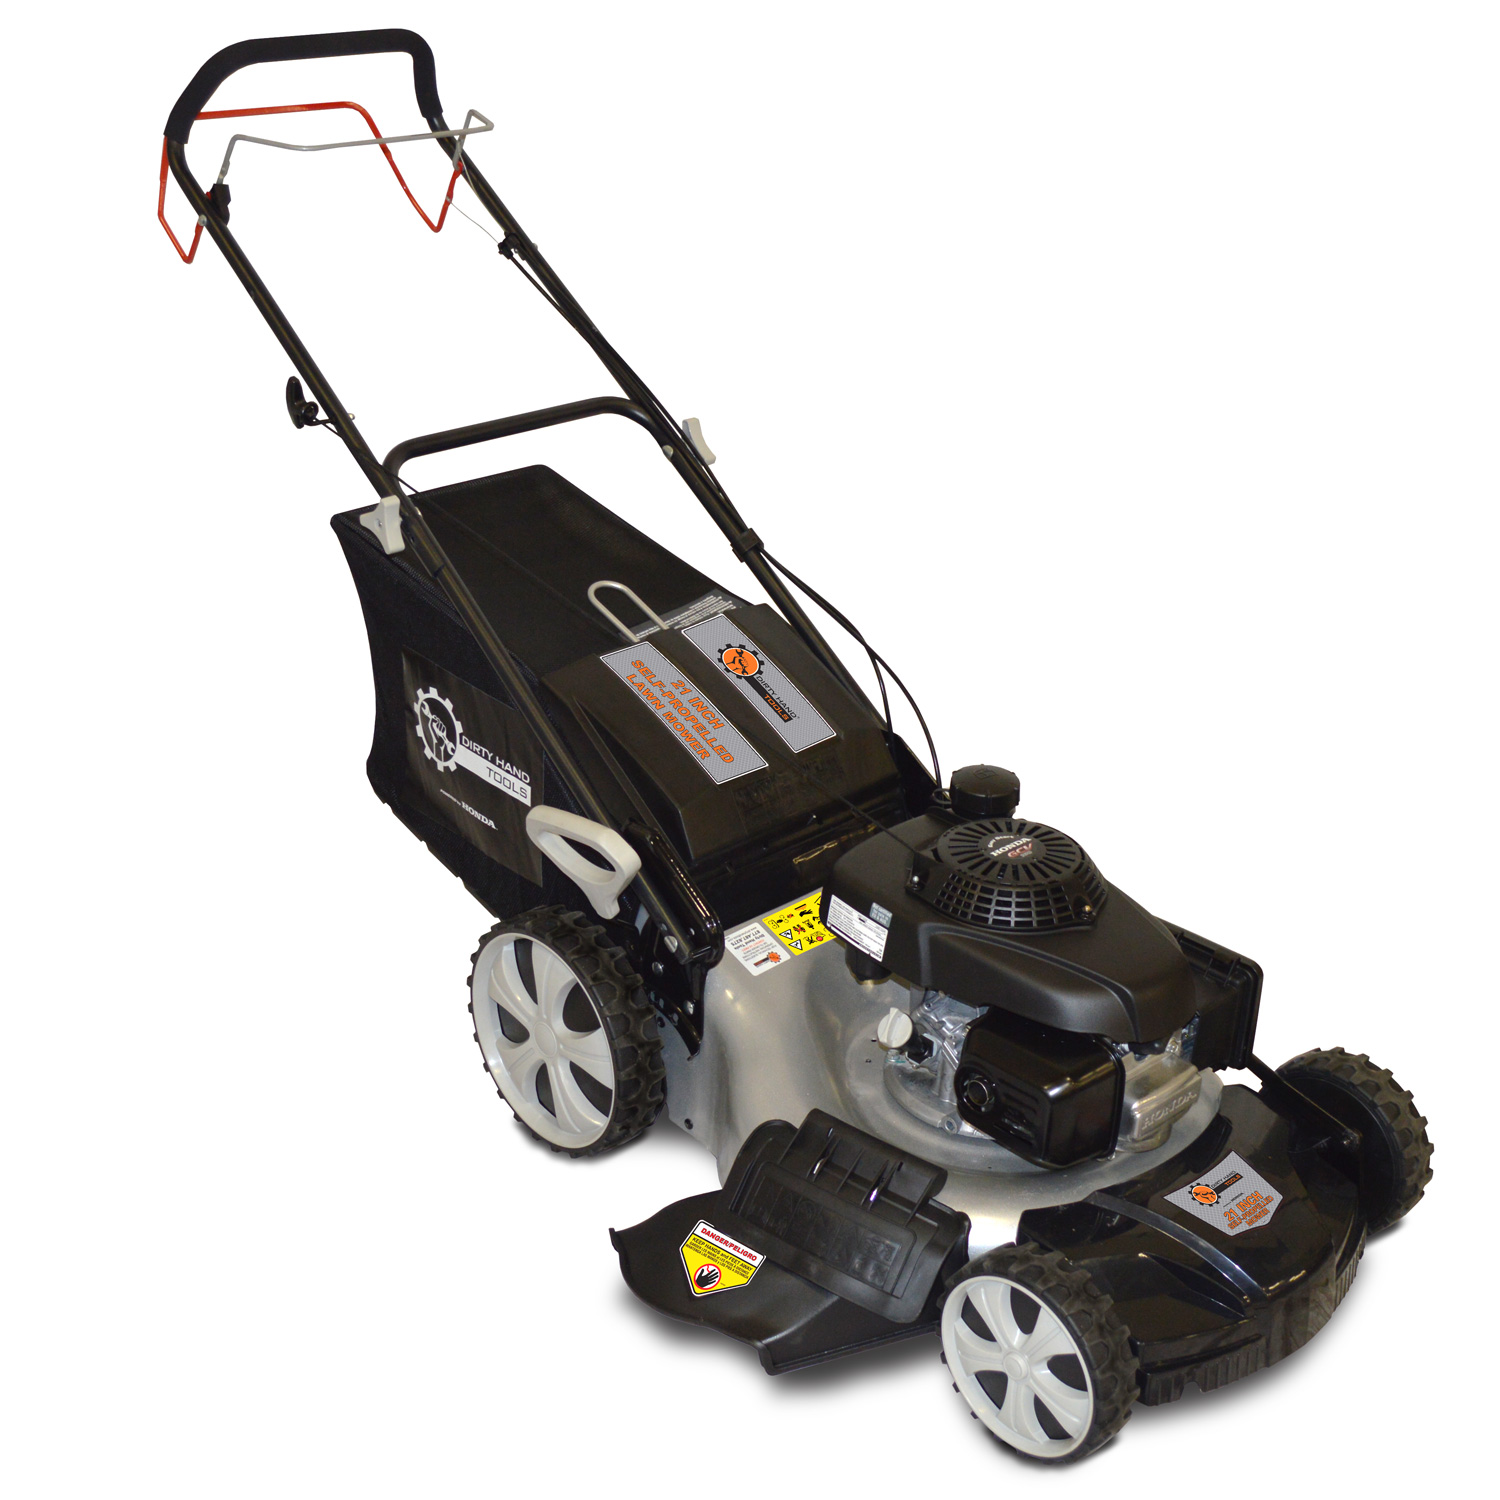 Dirty Hand Tools 21 in  self-propelled Lawn Mower - Honda Engine